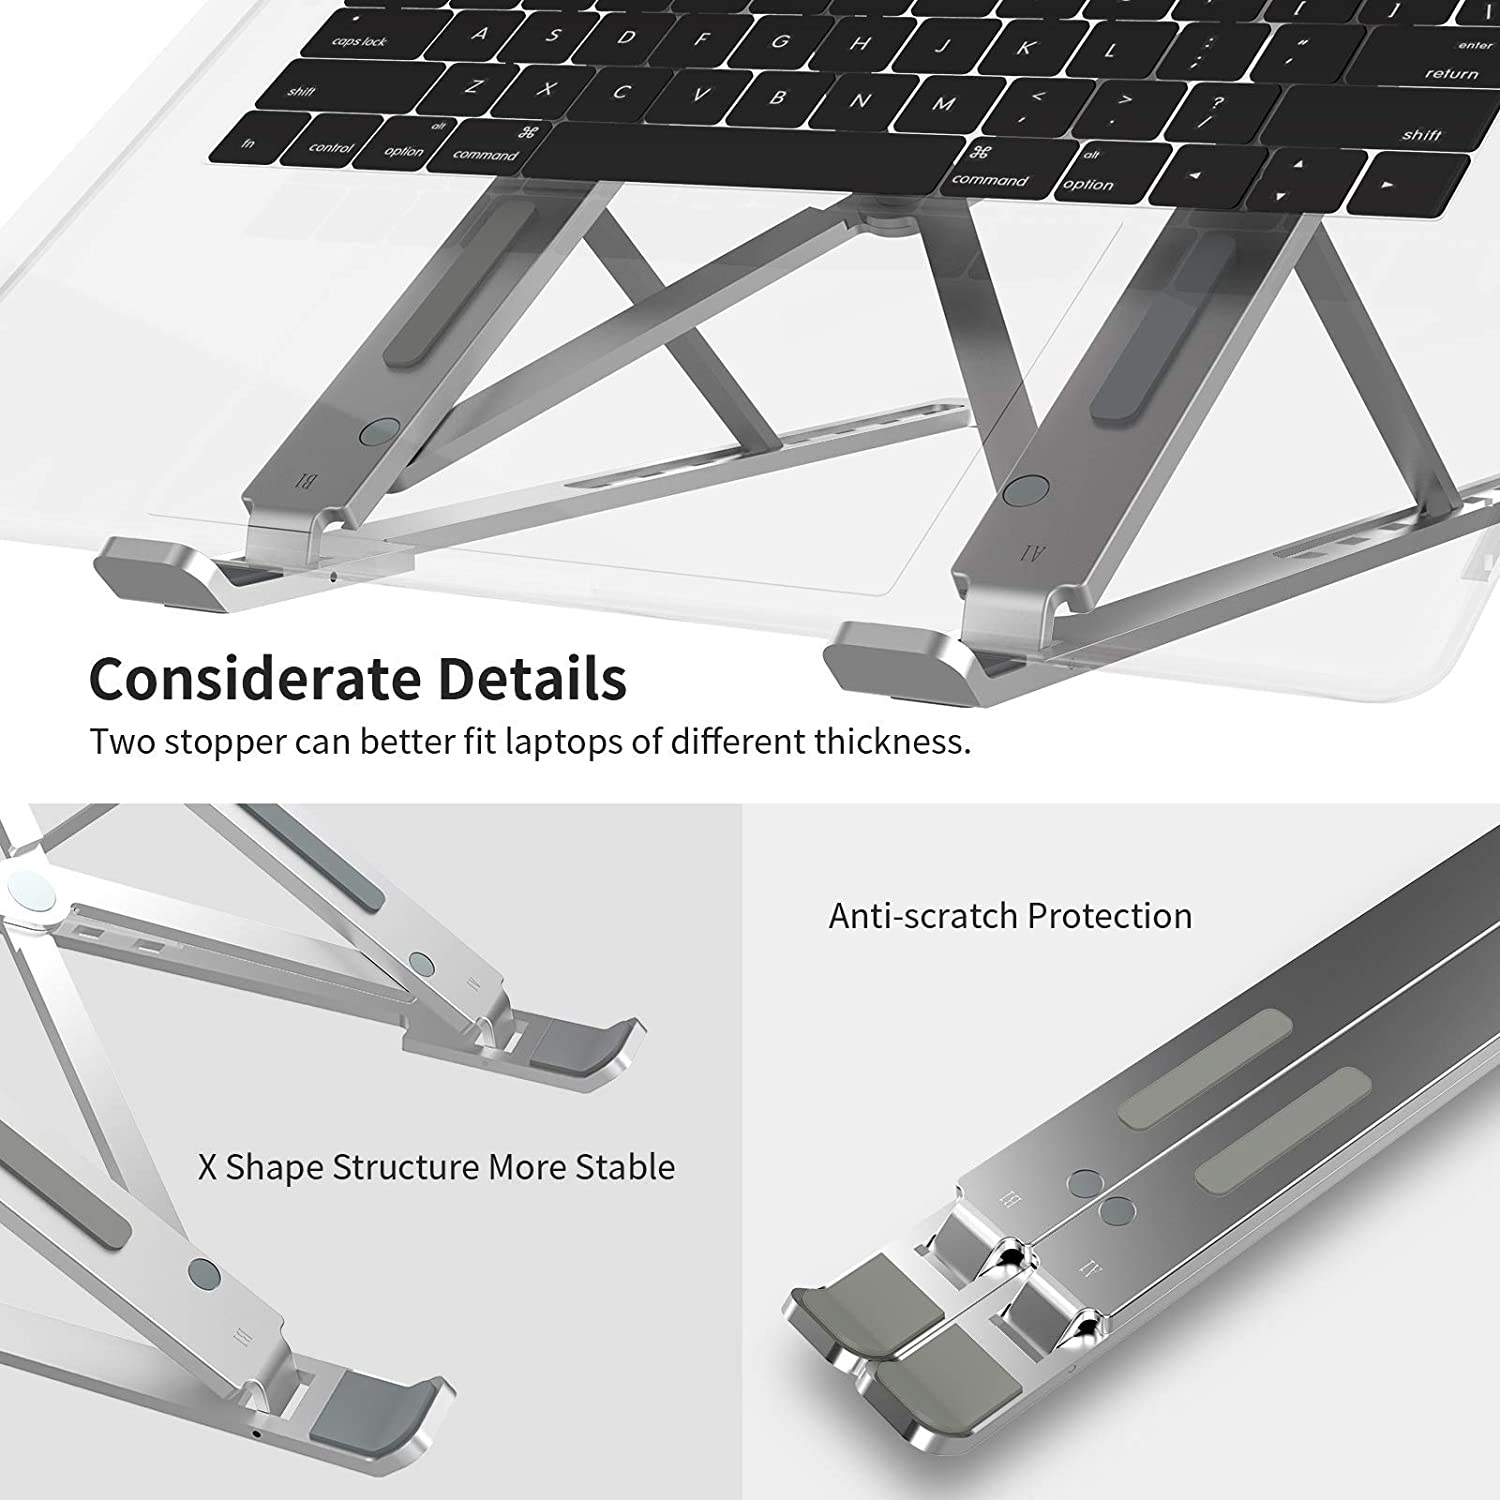 Multi Charger Cable 2 in 1 iPhone and Android USB C Charging Cable Romoss Portable Laptop Stand